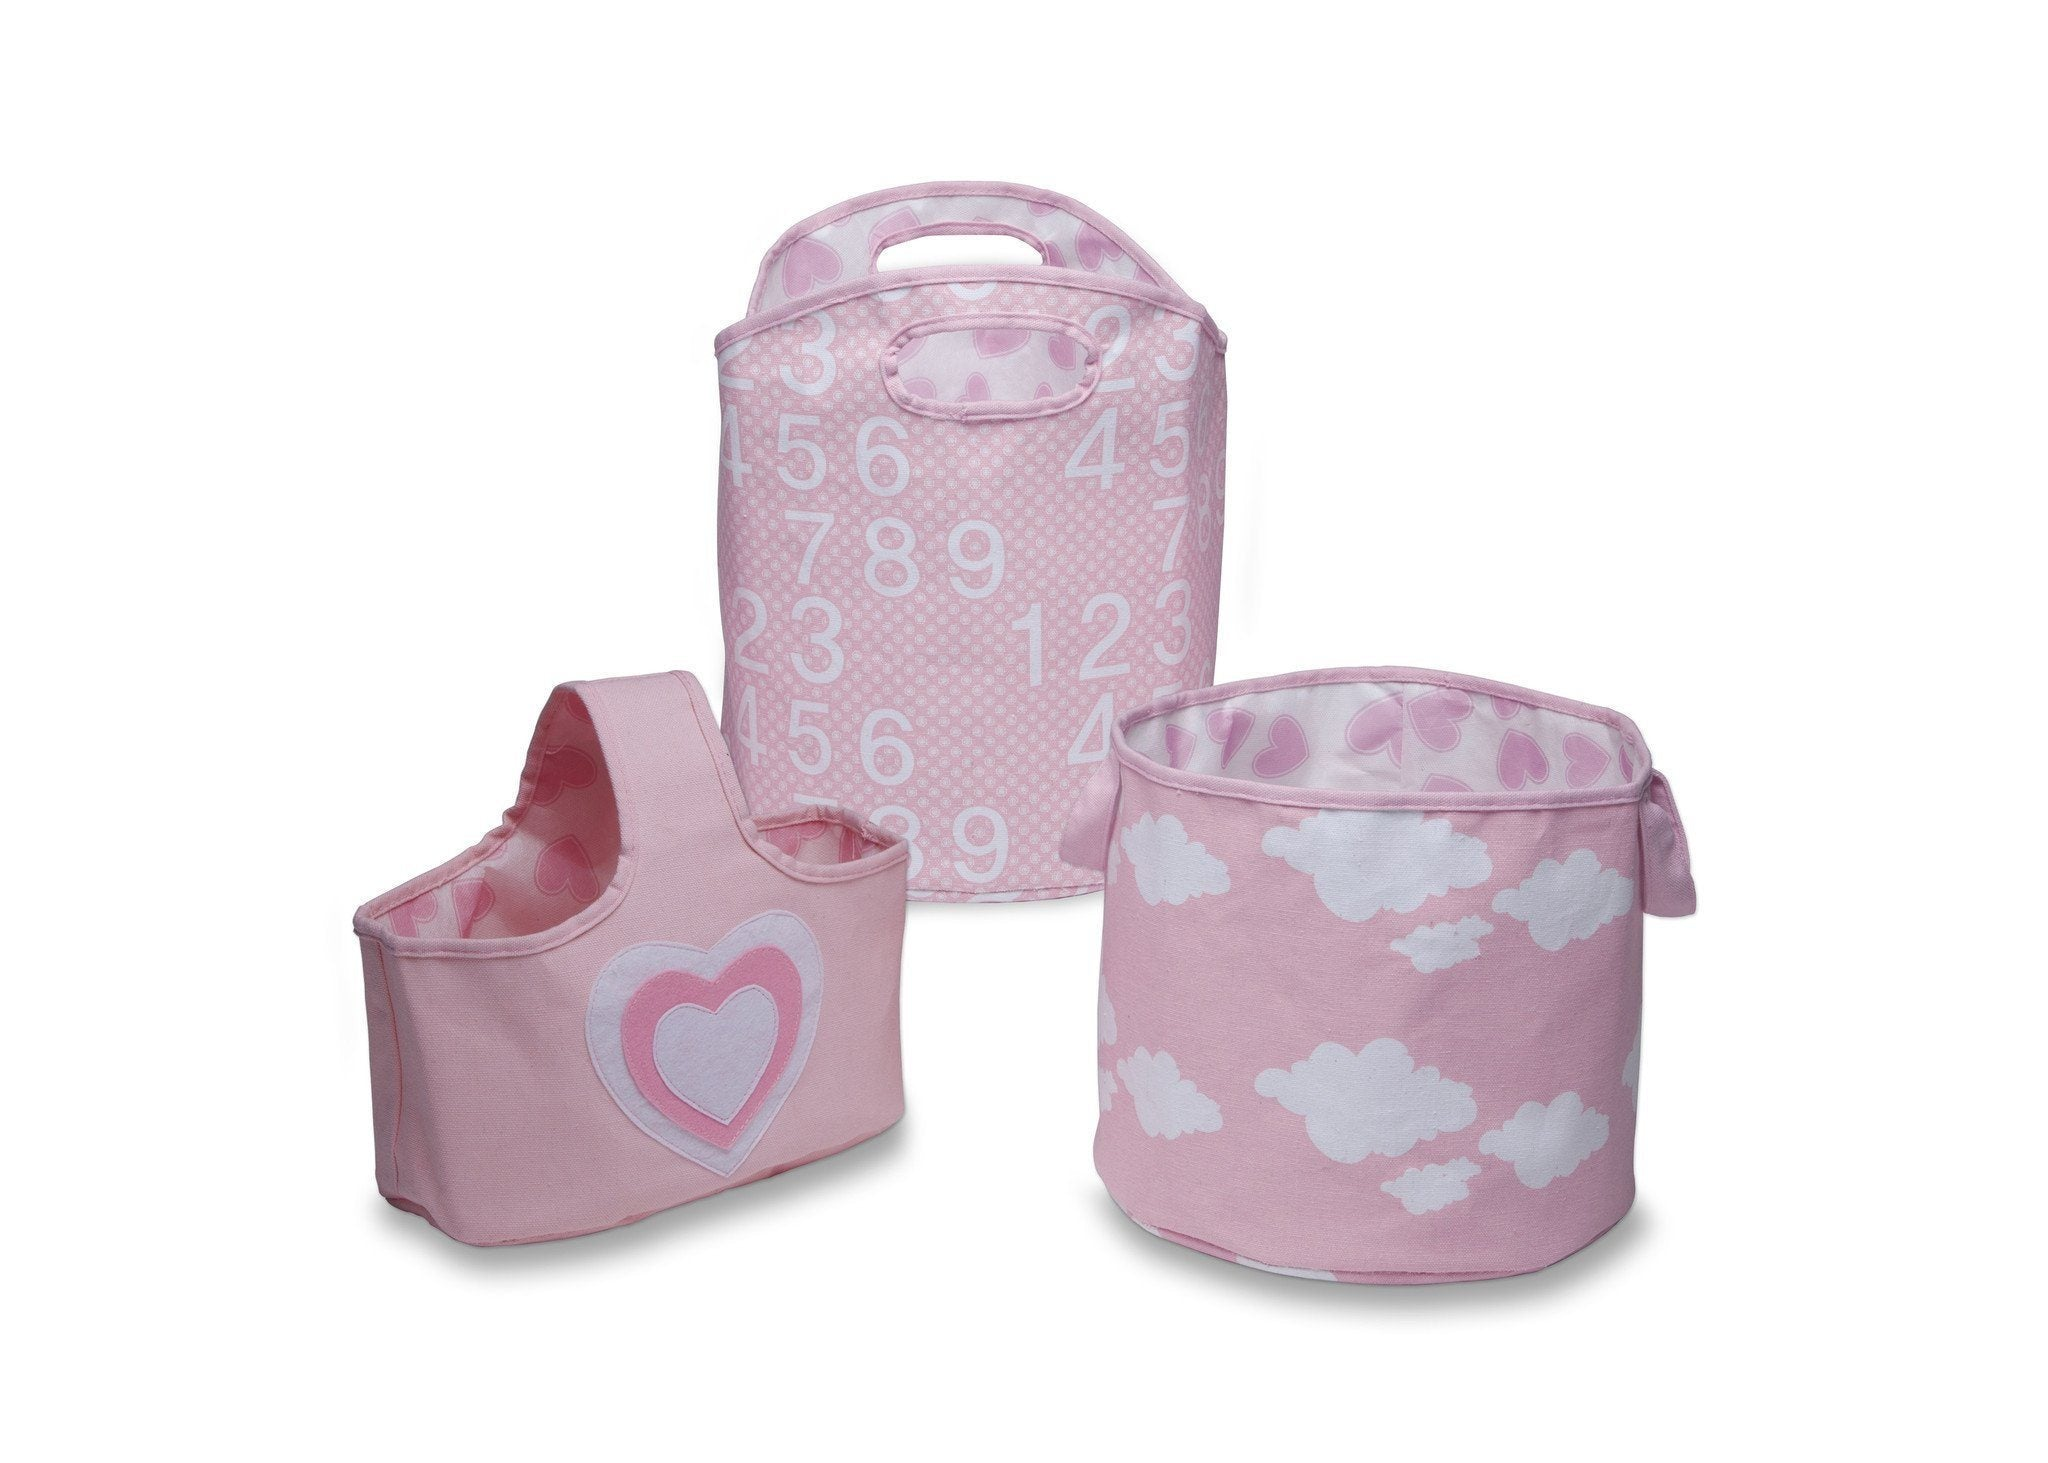 Delta Children's Pink (677) 3 Piece Character Storage Set, Front View c1c